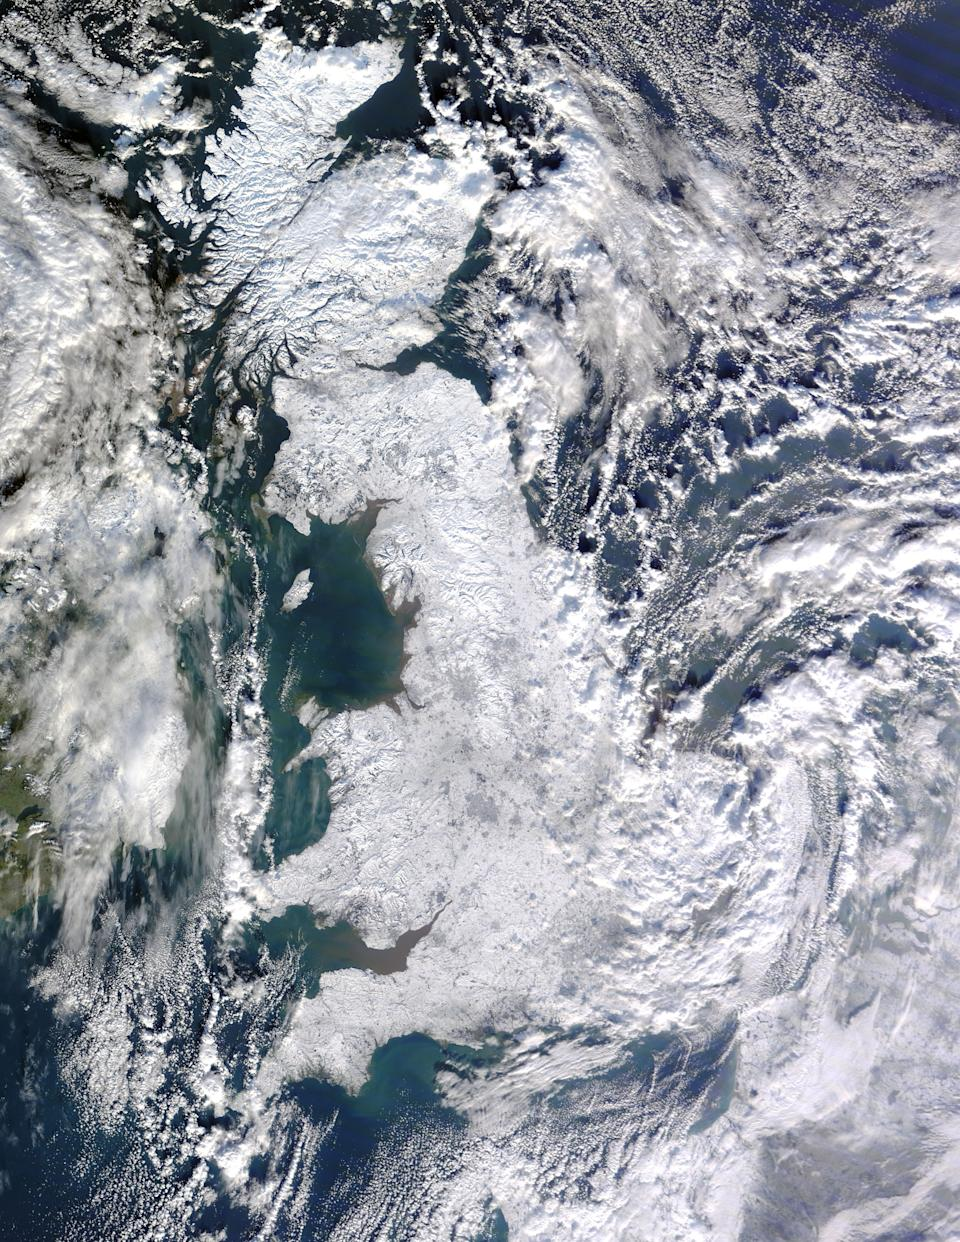 Snow blanketed Great Britain on January 7, 2010 captured by NASA's Moderate Resolution Imaging Spectroradiometer. (PA)